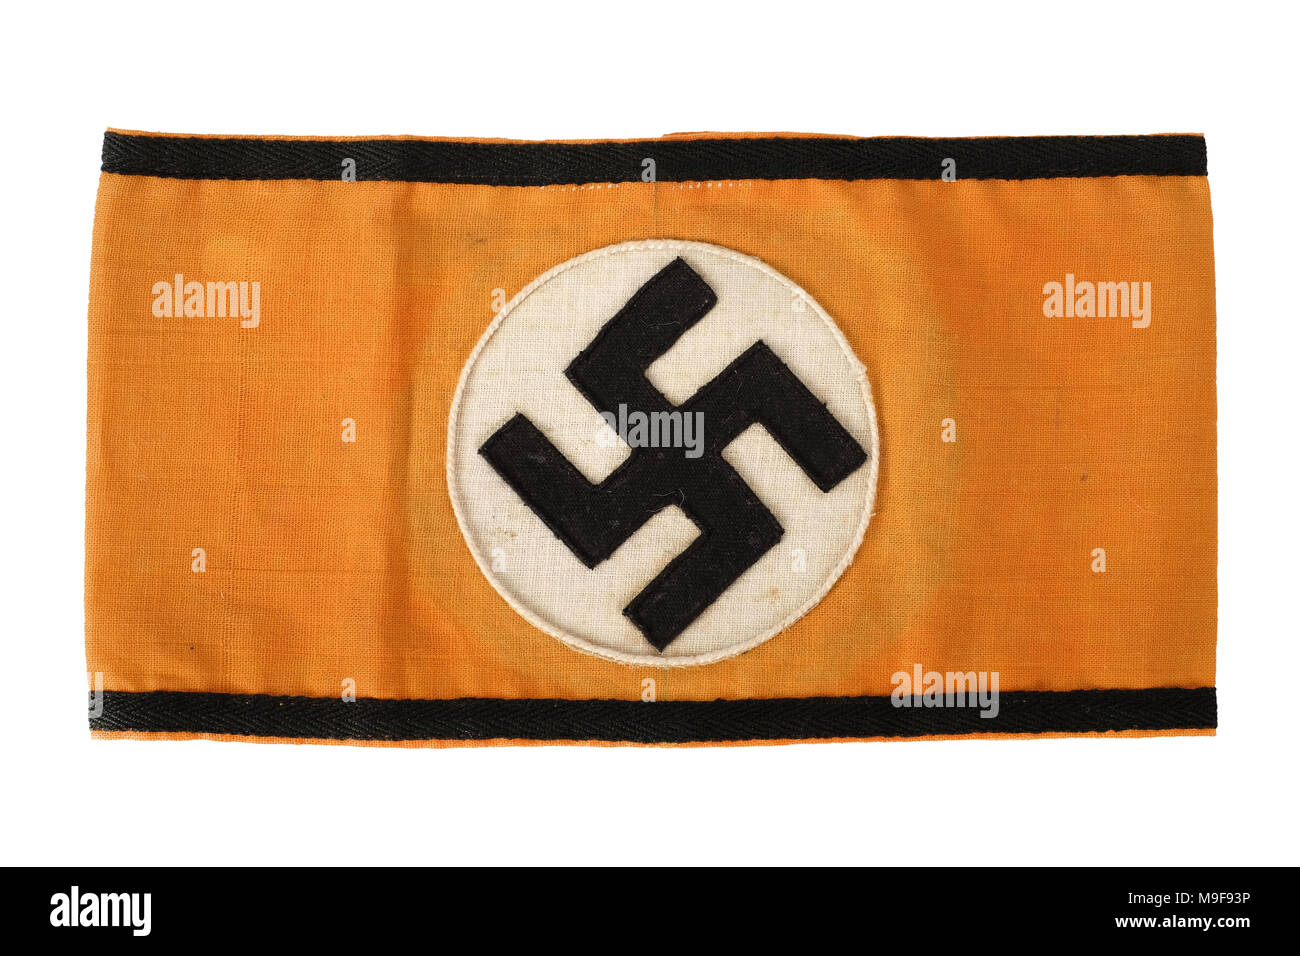 Nazi swastika stock photos nazi swastika stock images page 2 alamy ww2 german third reich authentic nazi party armband featuring the swastika on an orange background biocorpaavc Image collections